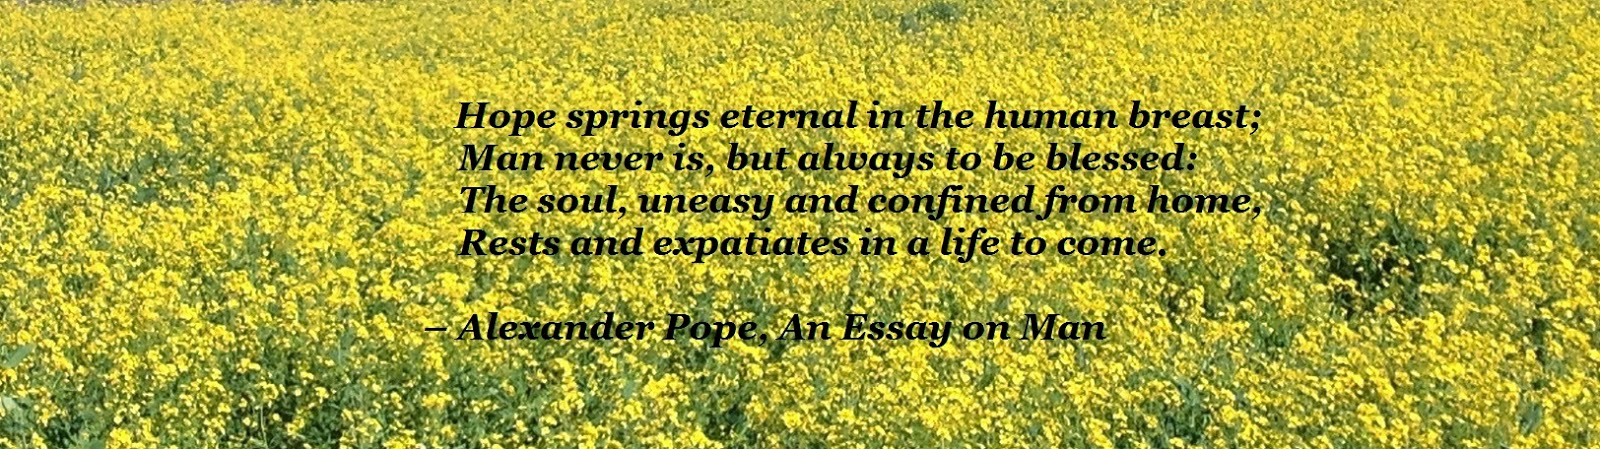 hope springs eternal essay The proverb is a quotation from pope's essay on man (1733) hope springs  eternal in the human breast: man never is, but always to be, blest the soul,  unesay.